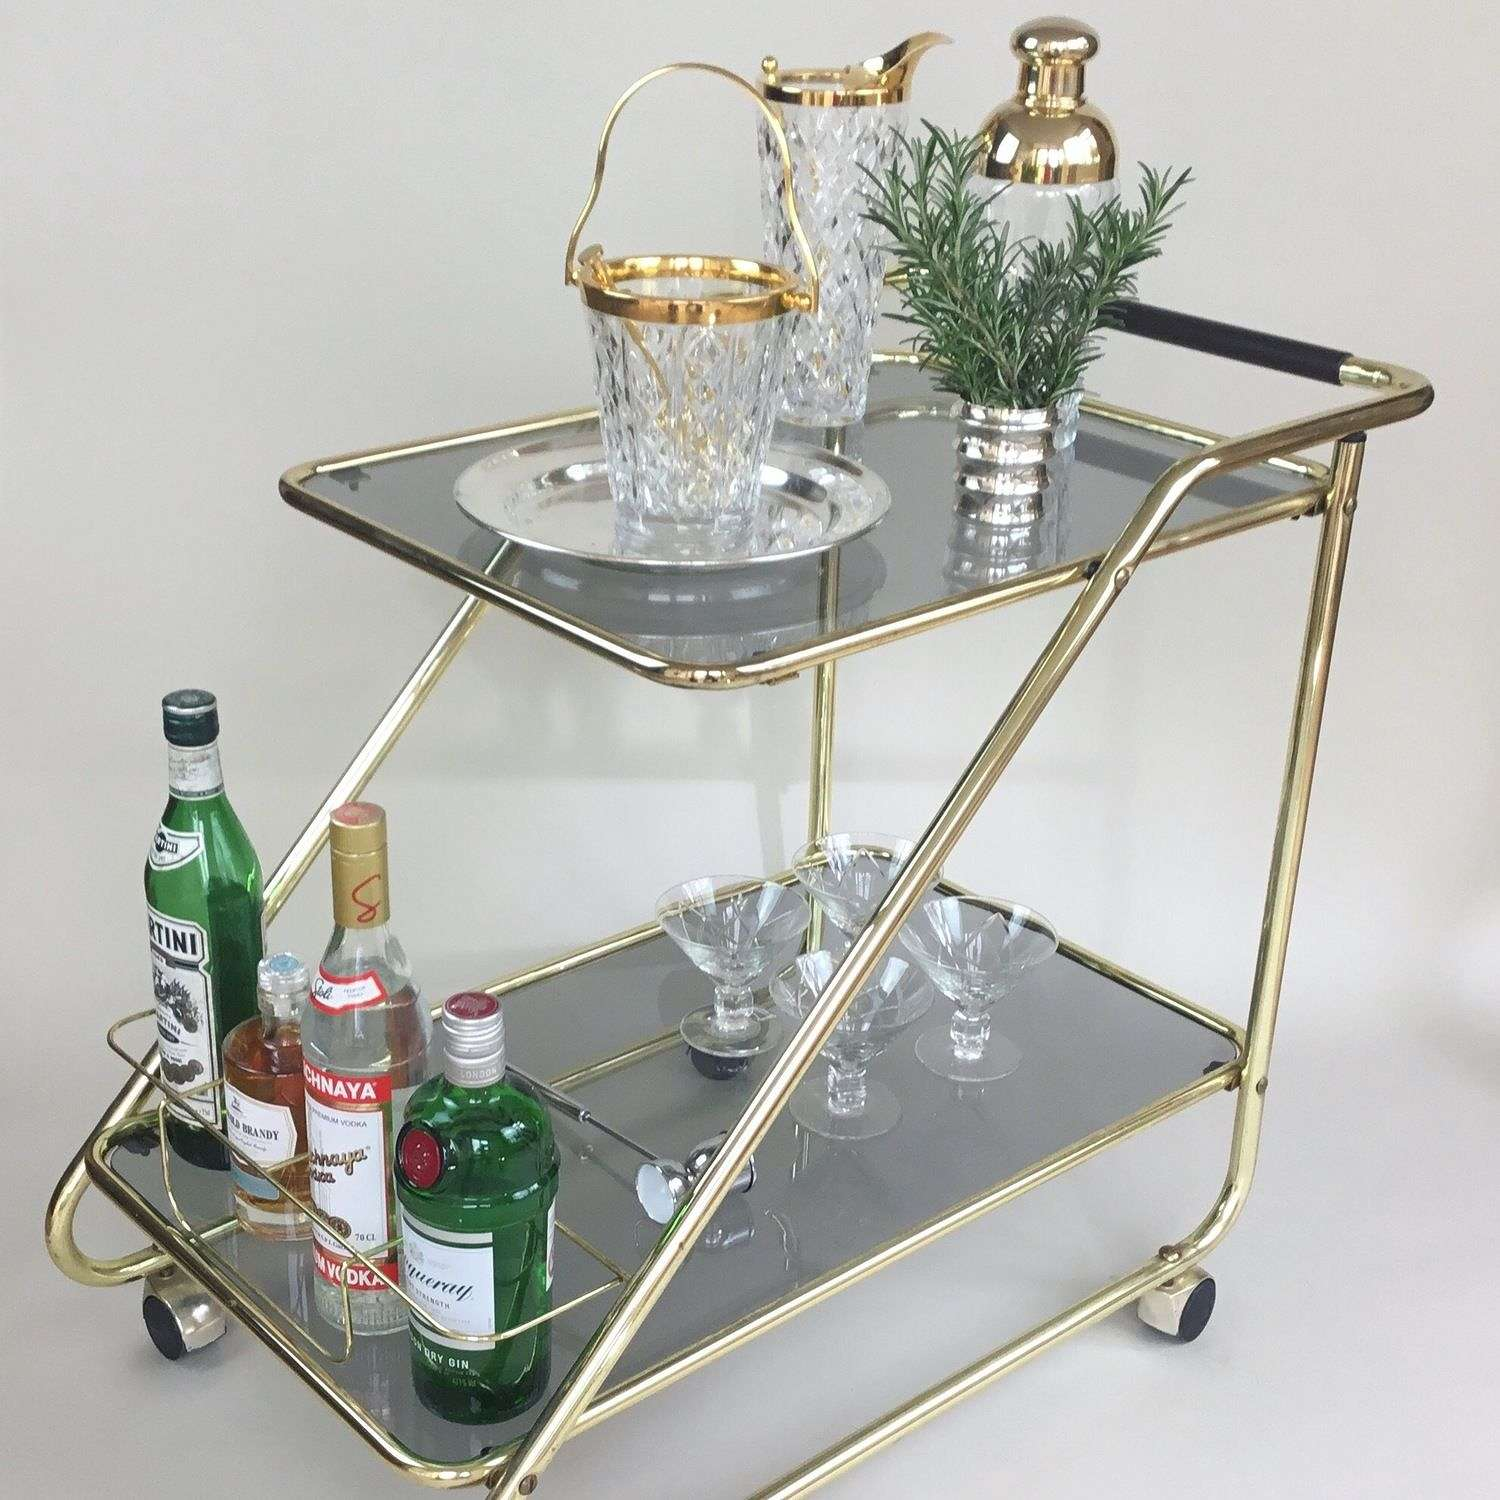 1960s smoked glass Drinks trolley